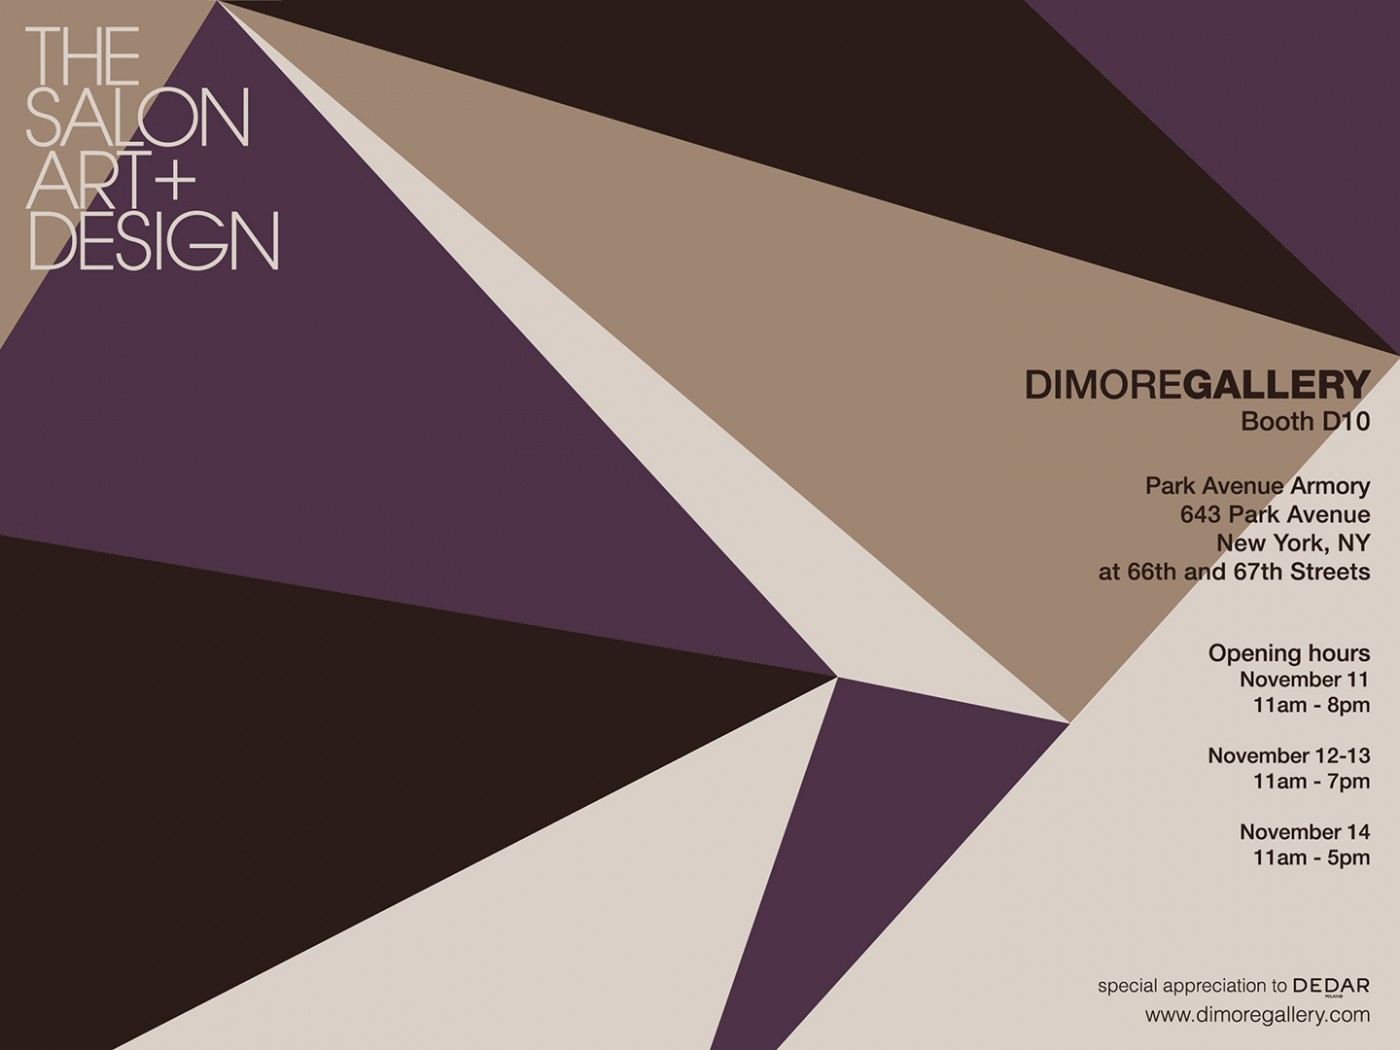 The salon ny october 2016 dimoregallery together with works that represent symbols of excellence of italian design in order to create a perfect dialogue between past and present buycottarizona